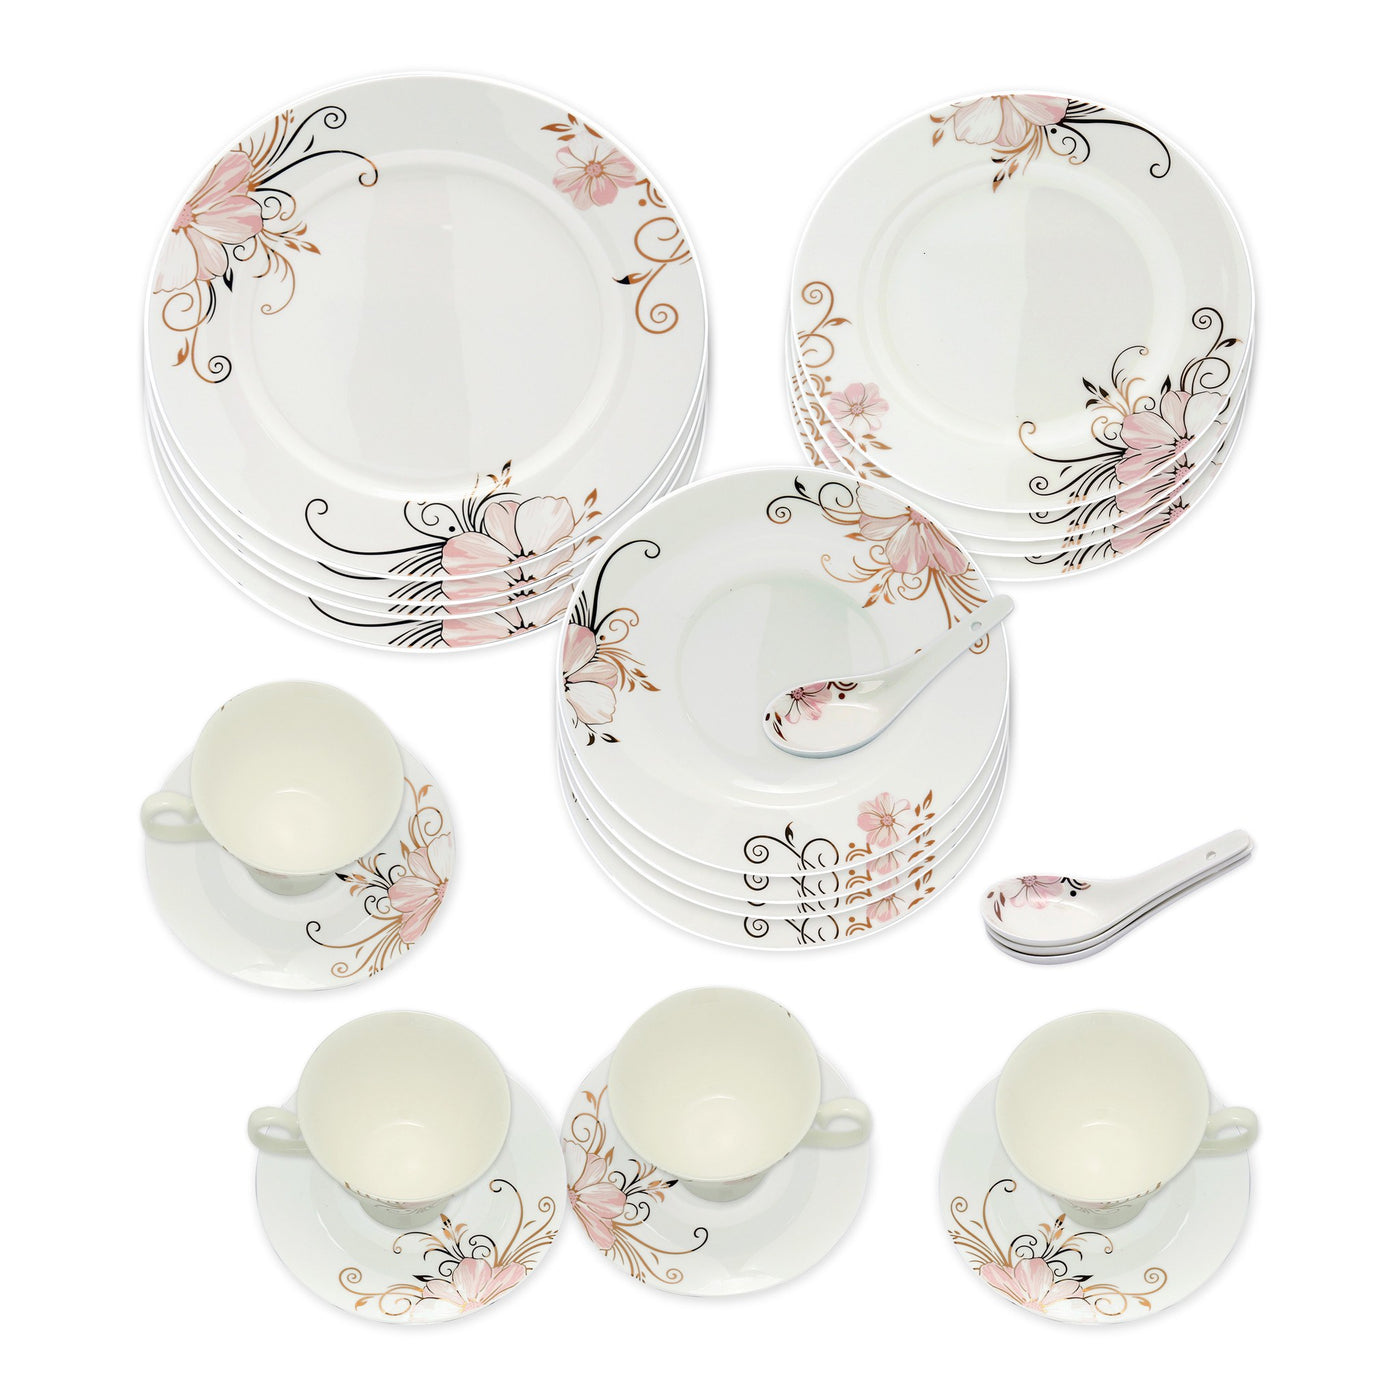 Patterned Dinnerware Sets Awesome Ideas